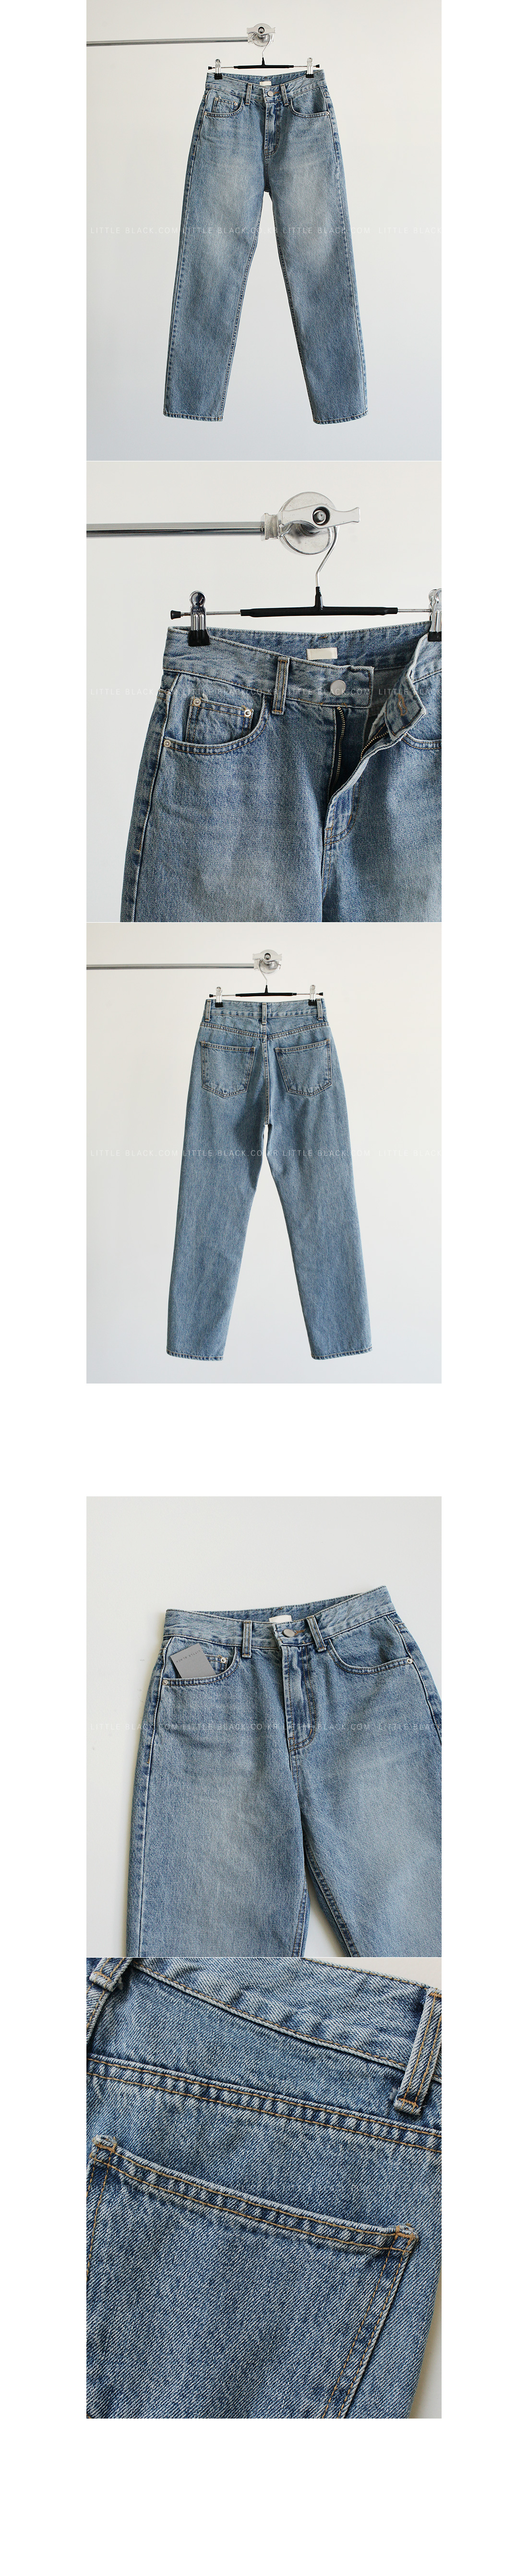 Light Wash Straight Leg Jeans|